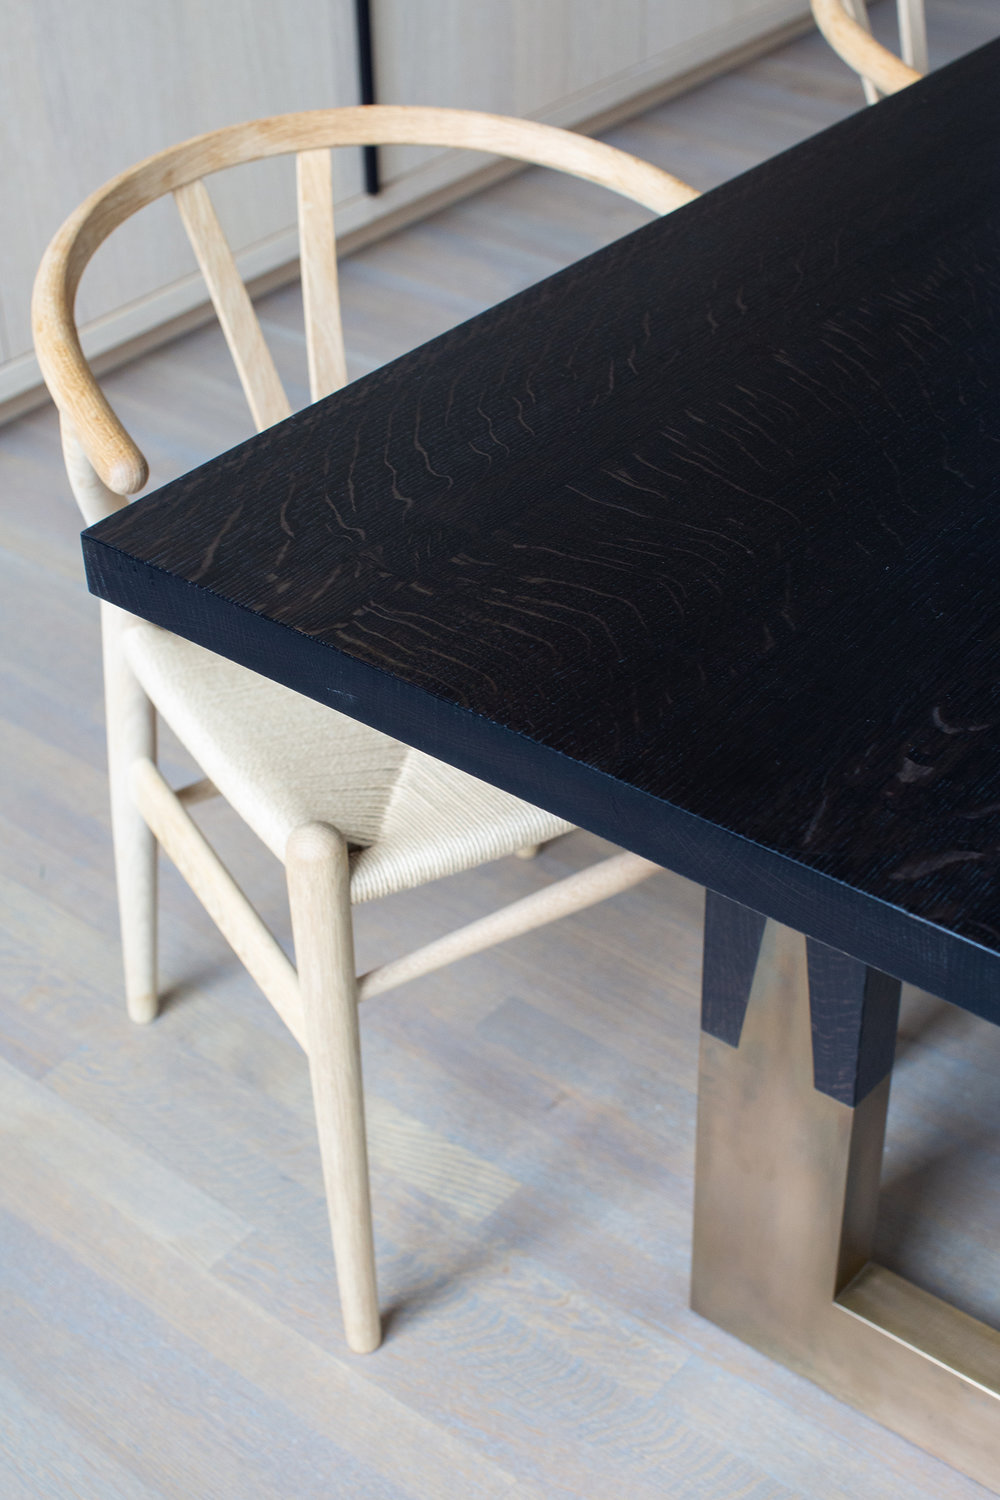 Custom dining table in ebonized oak and bronze